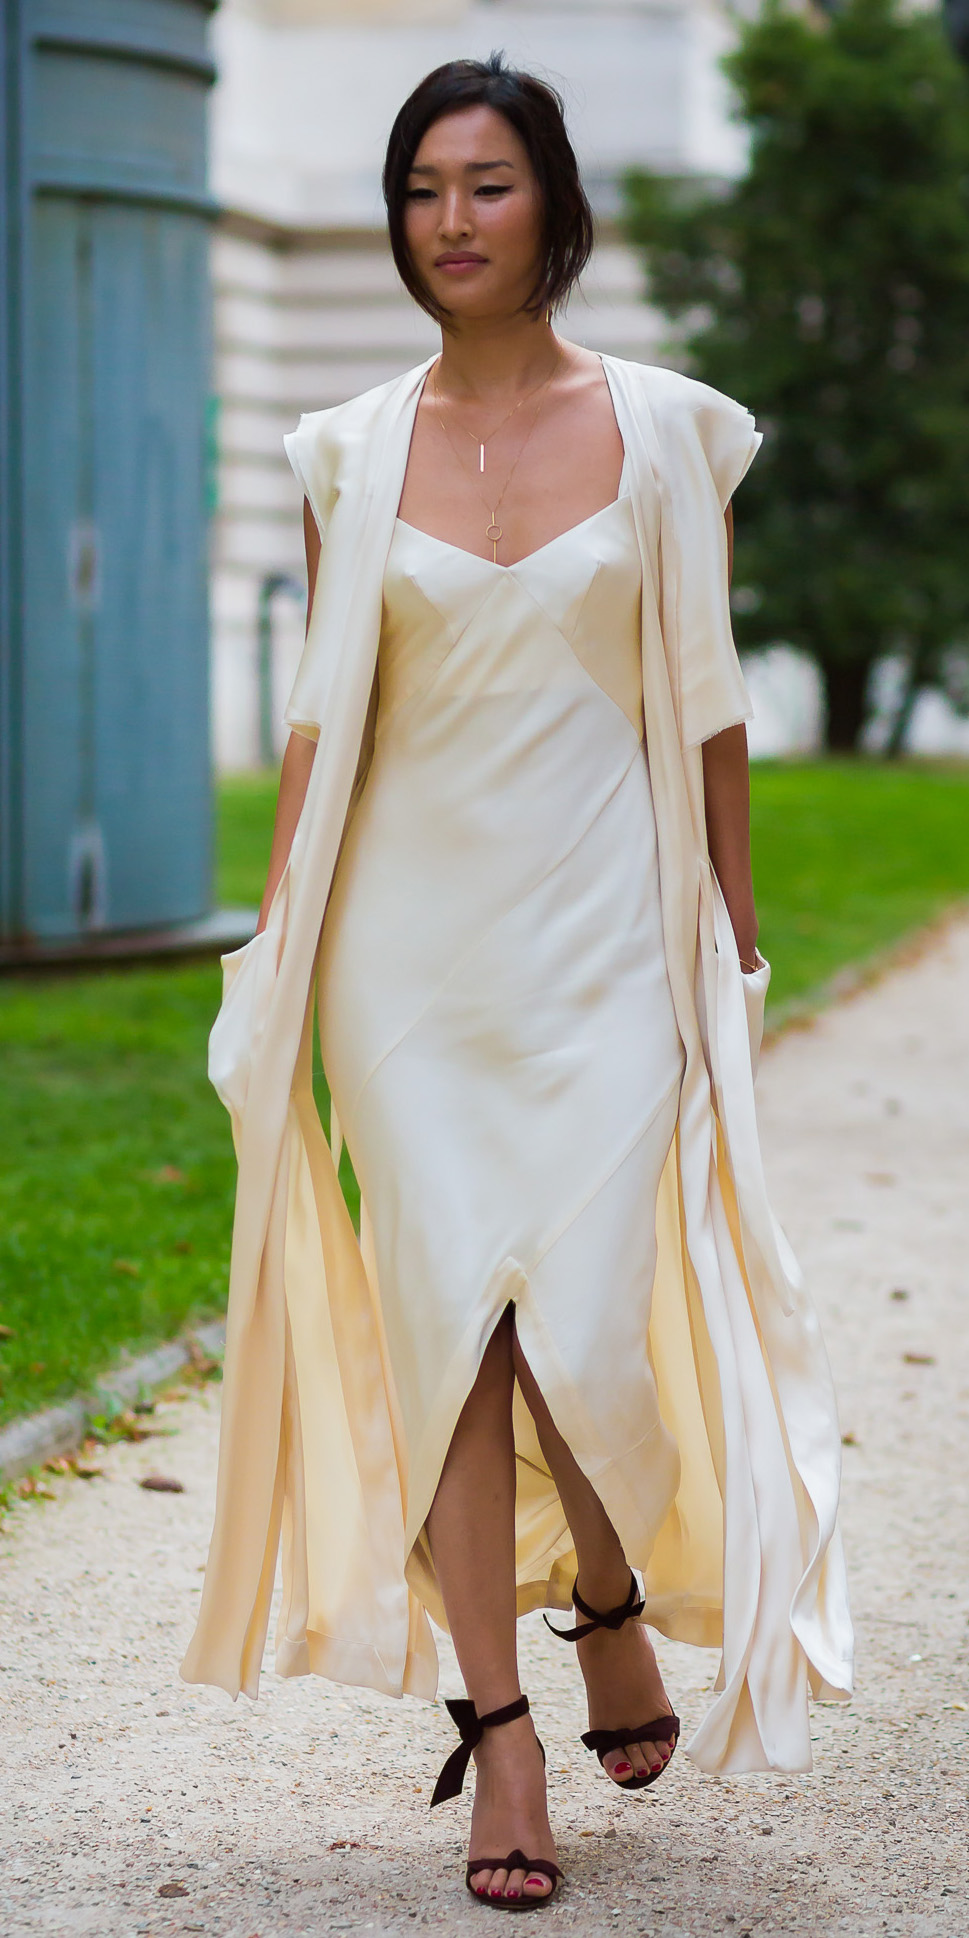 white-dress-slip-silk-white-vest-knit-maxi-brun-necklace-black-shoe-sandalh-spring-summer-dinner.jpg